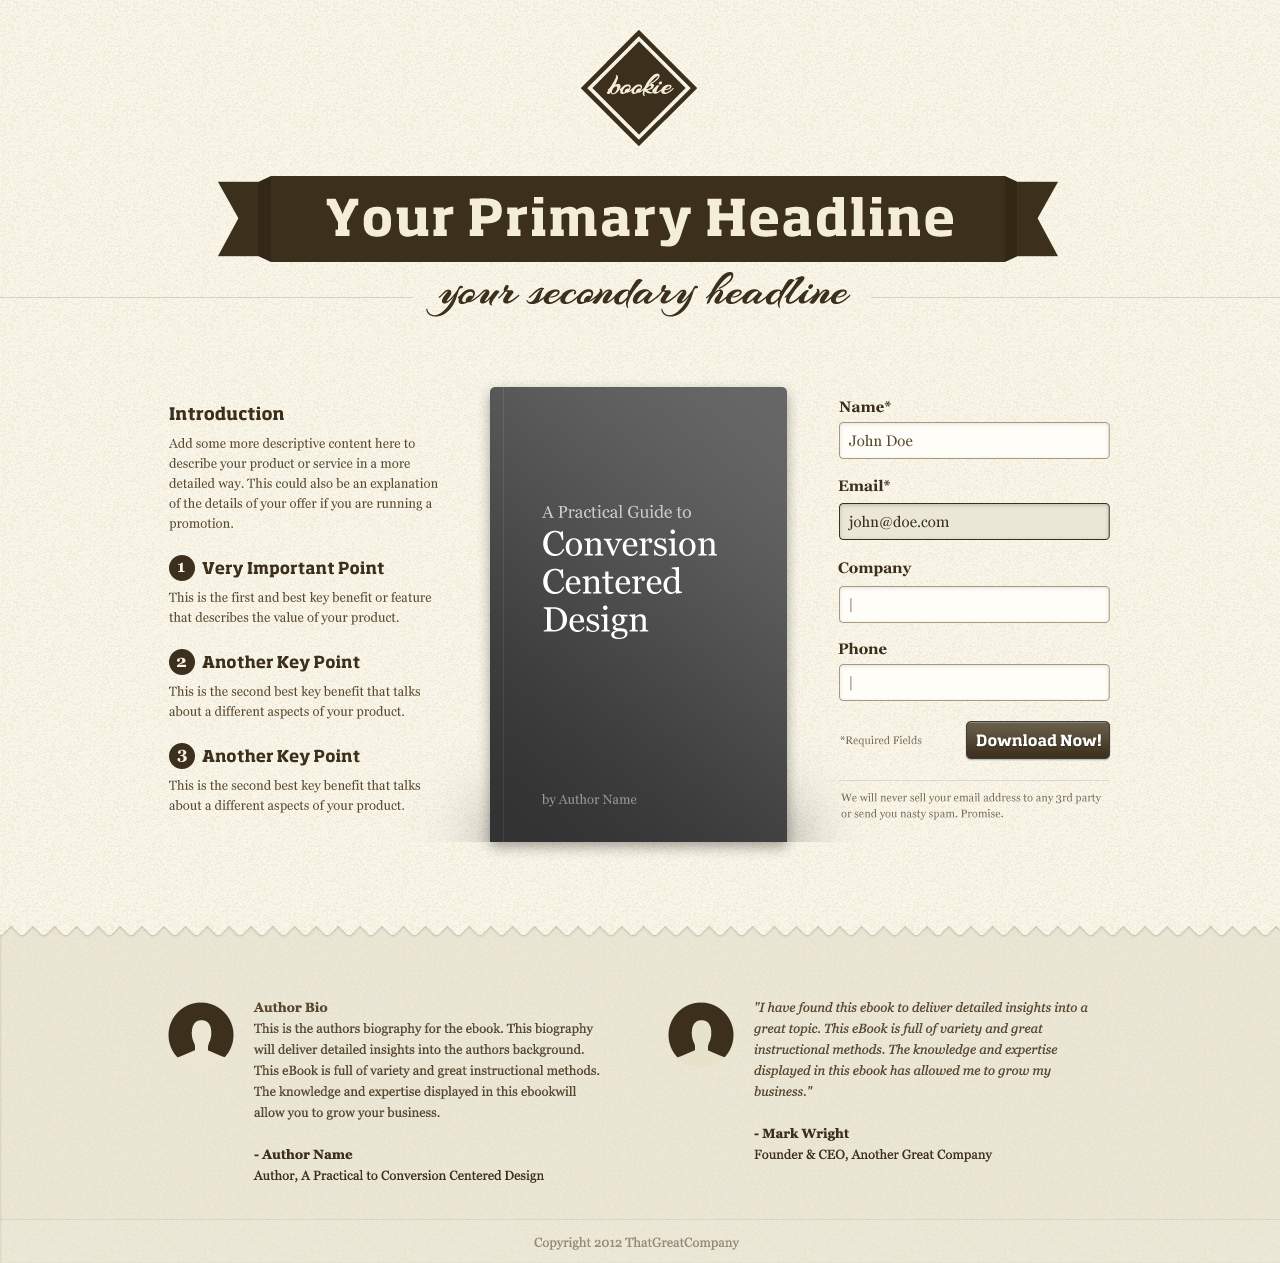 36 creative landing page design examples a showcase and critique landing page template fandeluxe Choice Image